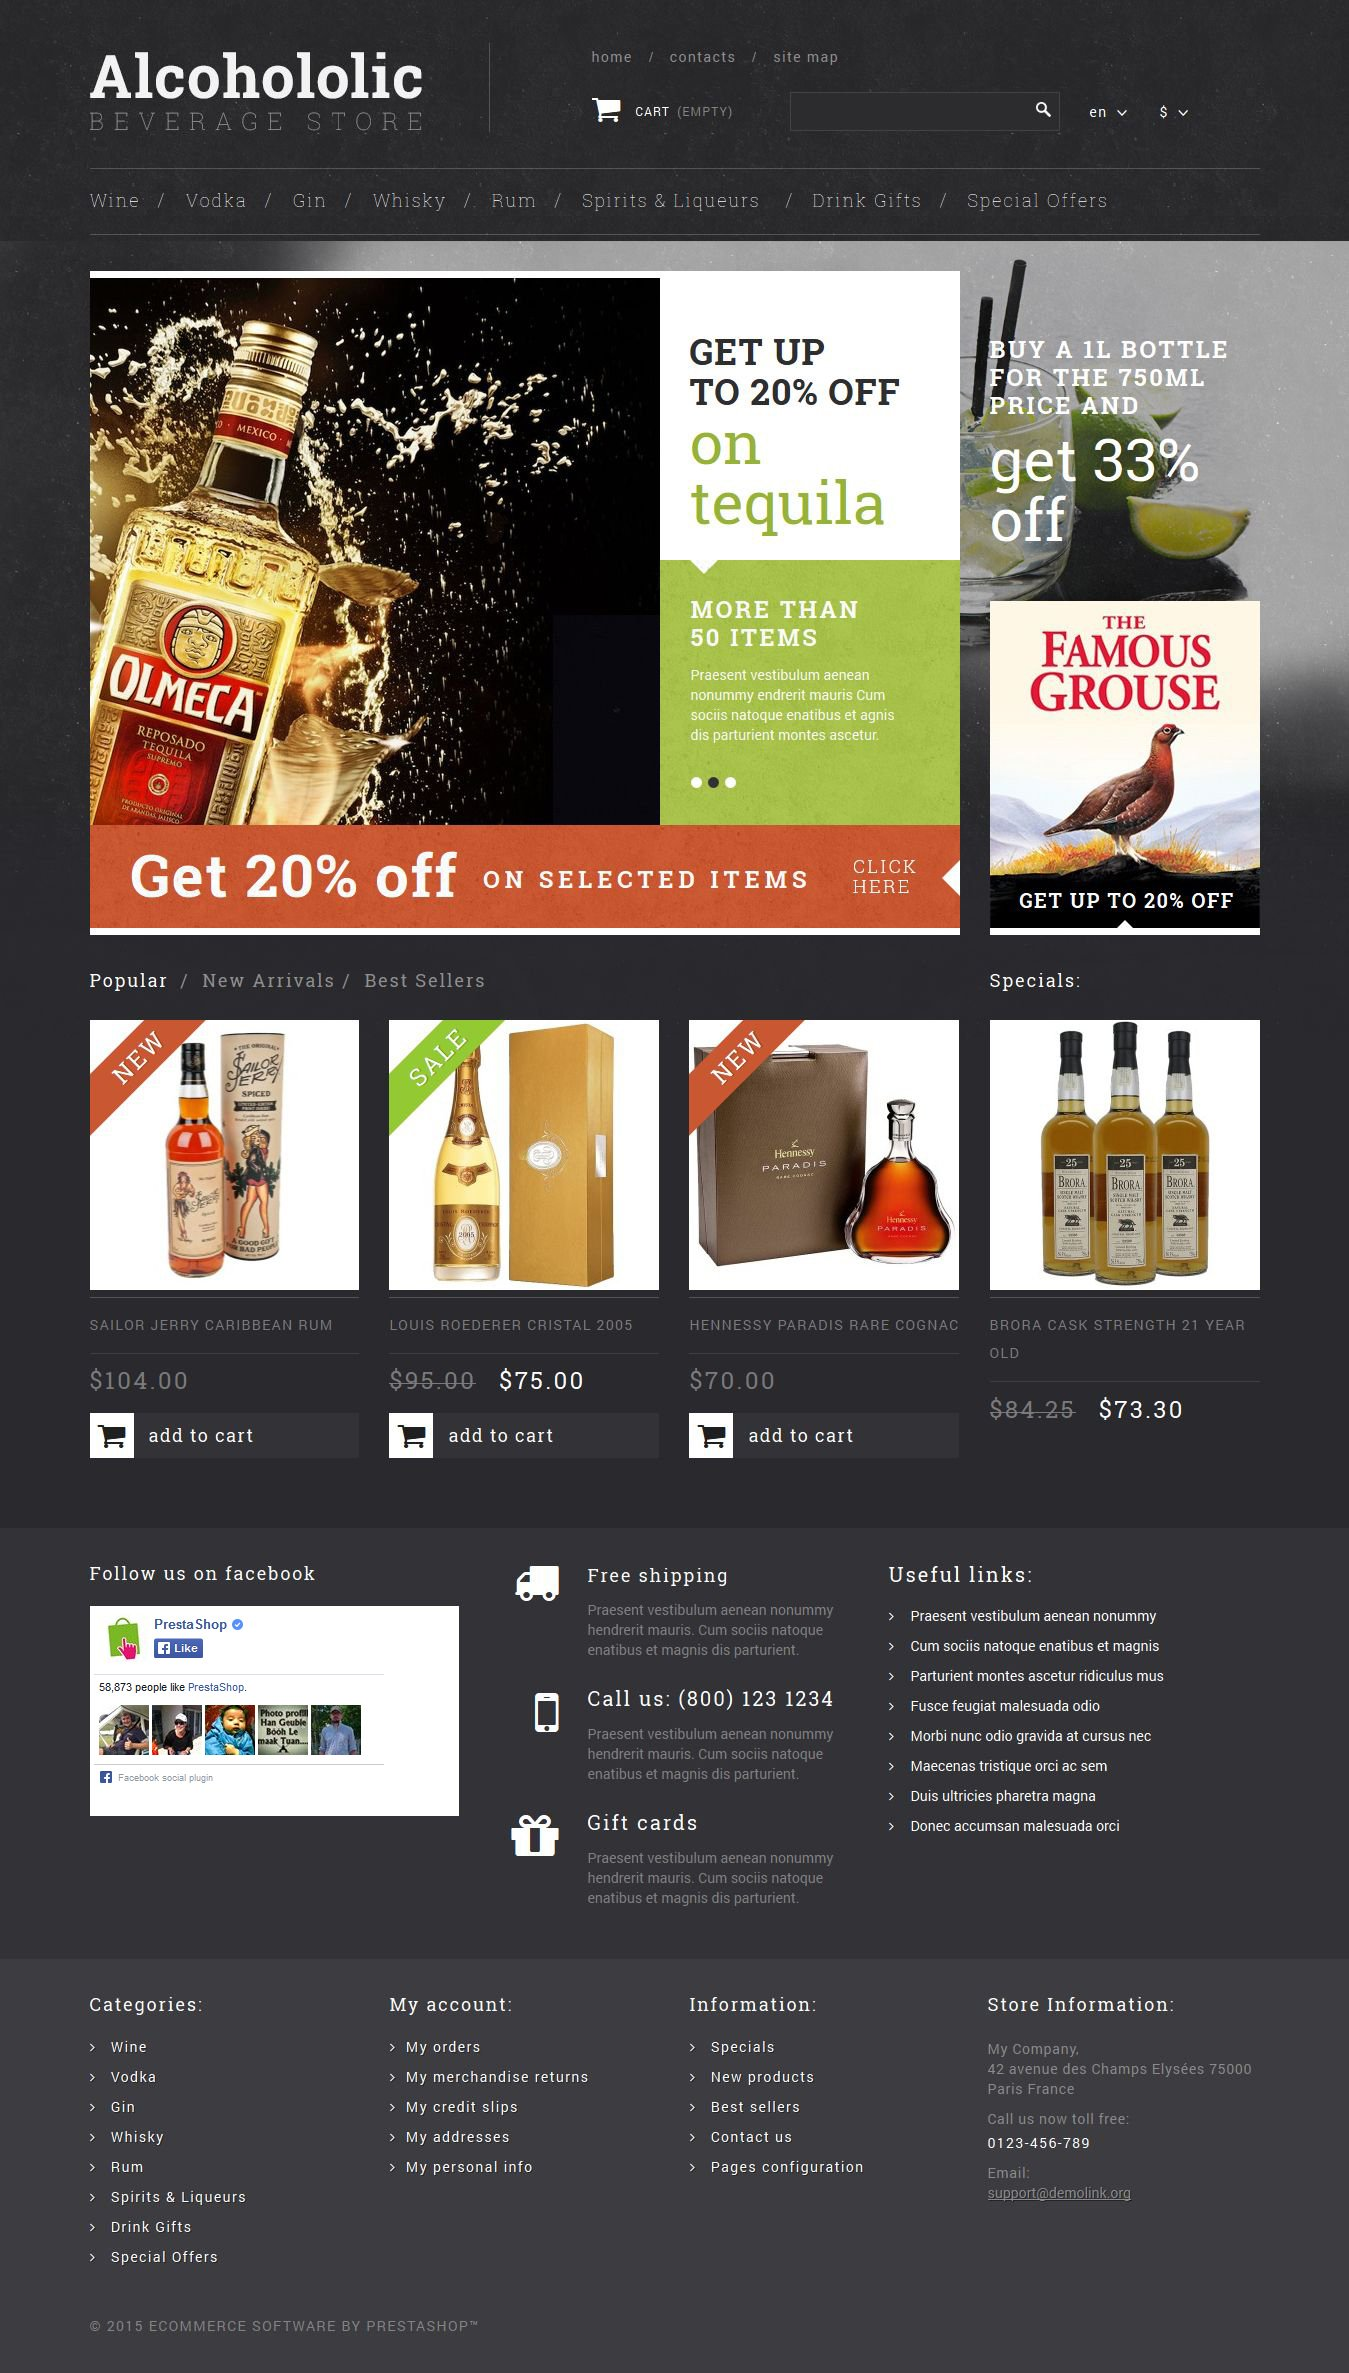 The Alcoholic Beverage Store PrestaShop Design 53034, one of the best PrestaShop themes of its kind (food & drink, most popular), also known as alcoholic beverage store PrestaShop template, scoth PrestaShop template, whisky PrestaShop template, rum PrestaShop template, cognac PrestaShop template, armagnac PrestaShop template, gin PrestaShop template, jenever PrestaShop template, absinthe PrestaShop template, vodka PrestaShop template, tequila PrestaShop template, glenfiddich PrestaShop template, absolut PrestaShop template, vanilia PrestaShop template, ancnoc PrestaShop template, balvenie PrestaShop template, shopping cart and related with alcoholic beverage store, scoth, whisky, rum, cognac, armagnac, gin, jenever, absinthe, vodka, tequila, glenfiddich, absolut, vanilia, ancnoc, balvenie, shopping cart, etc.